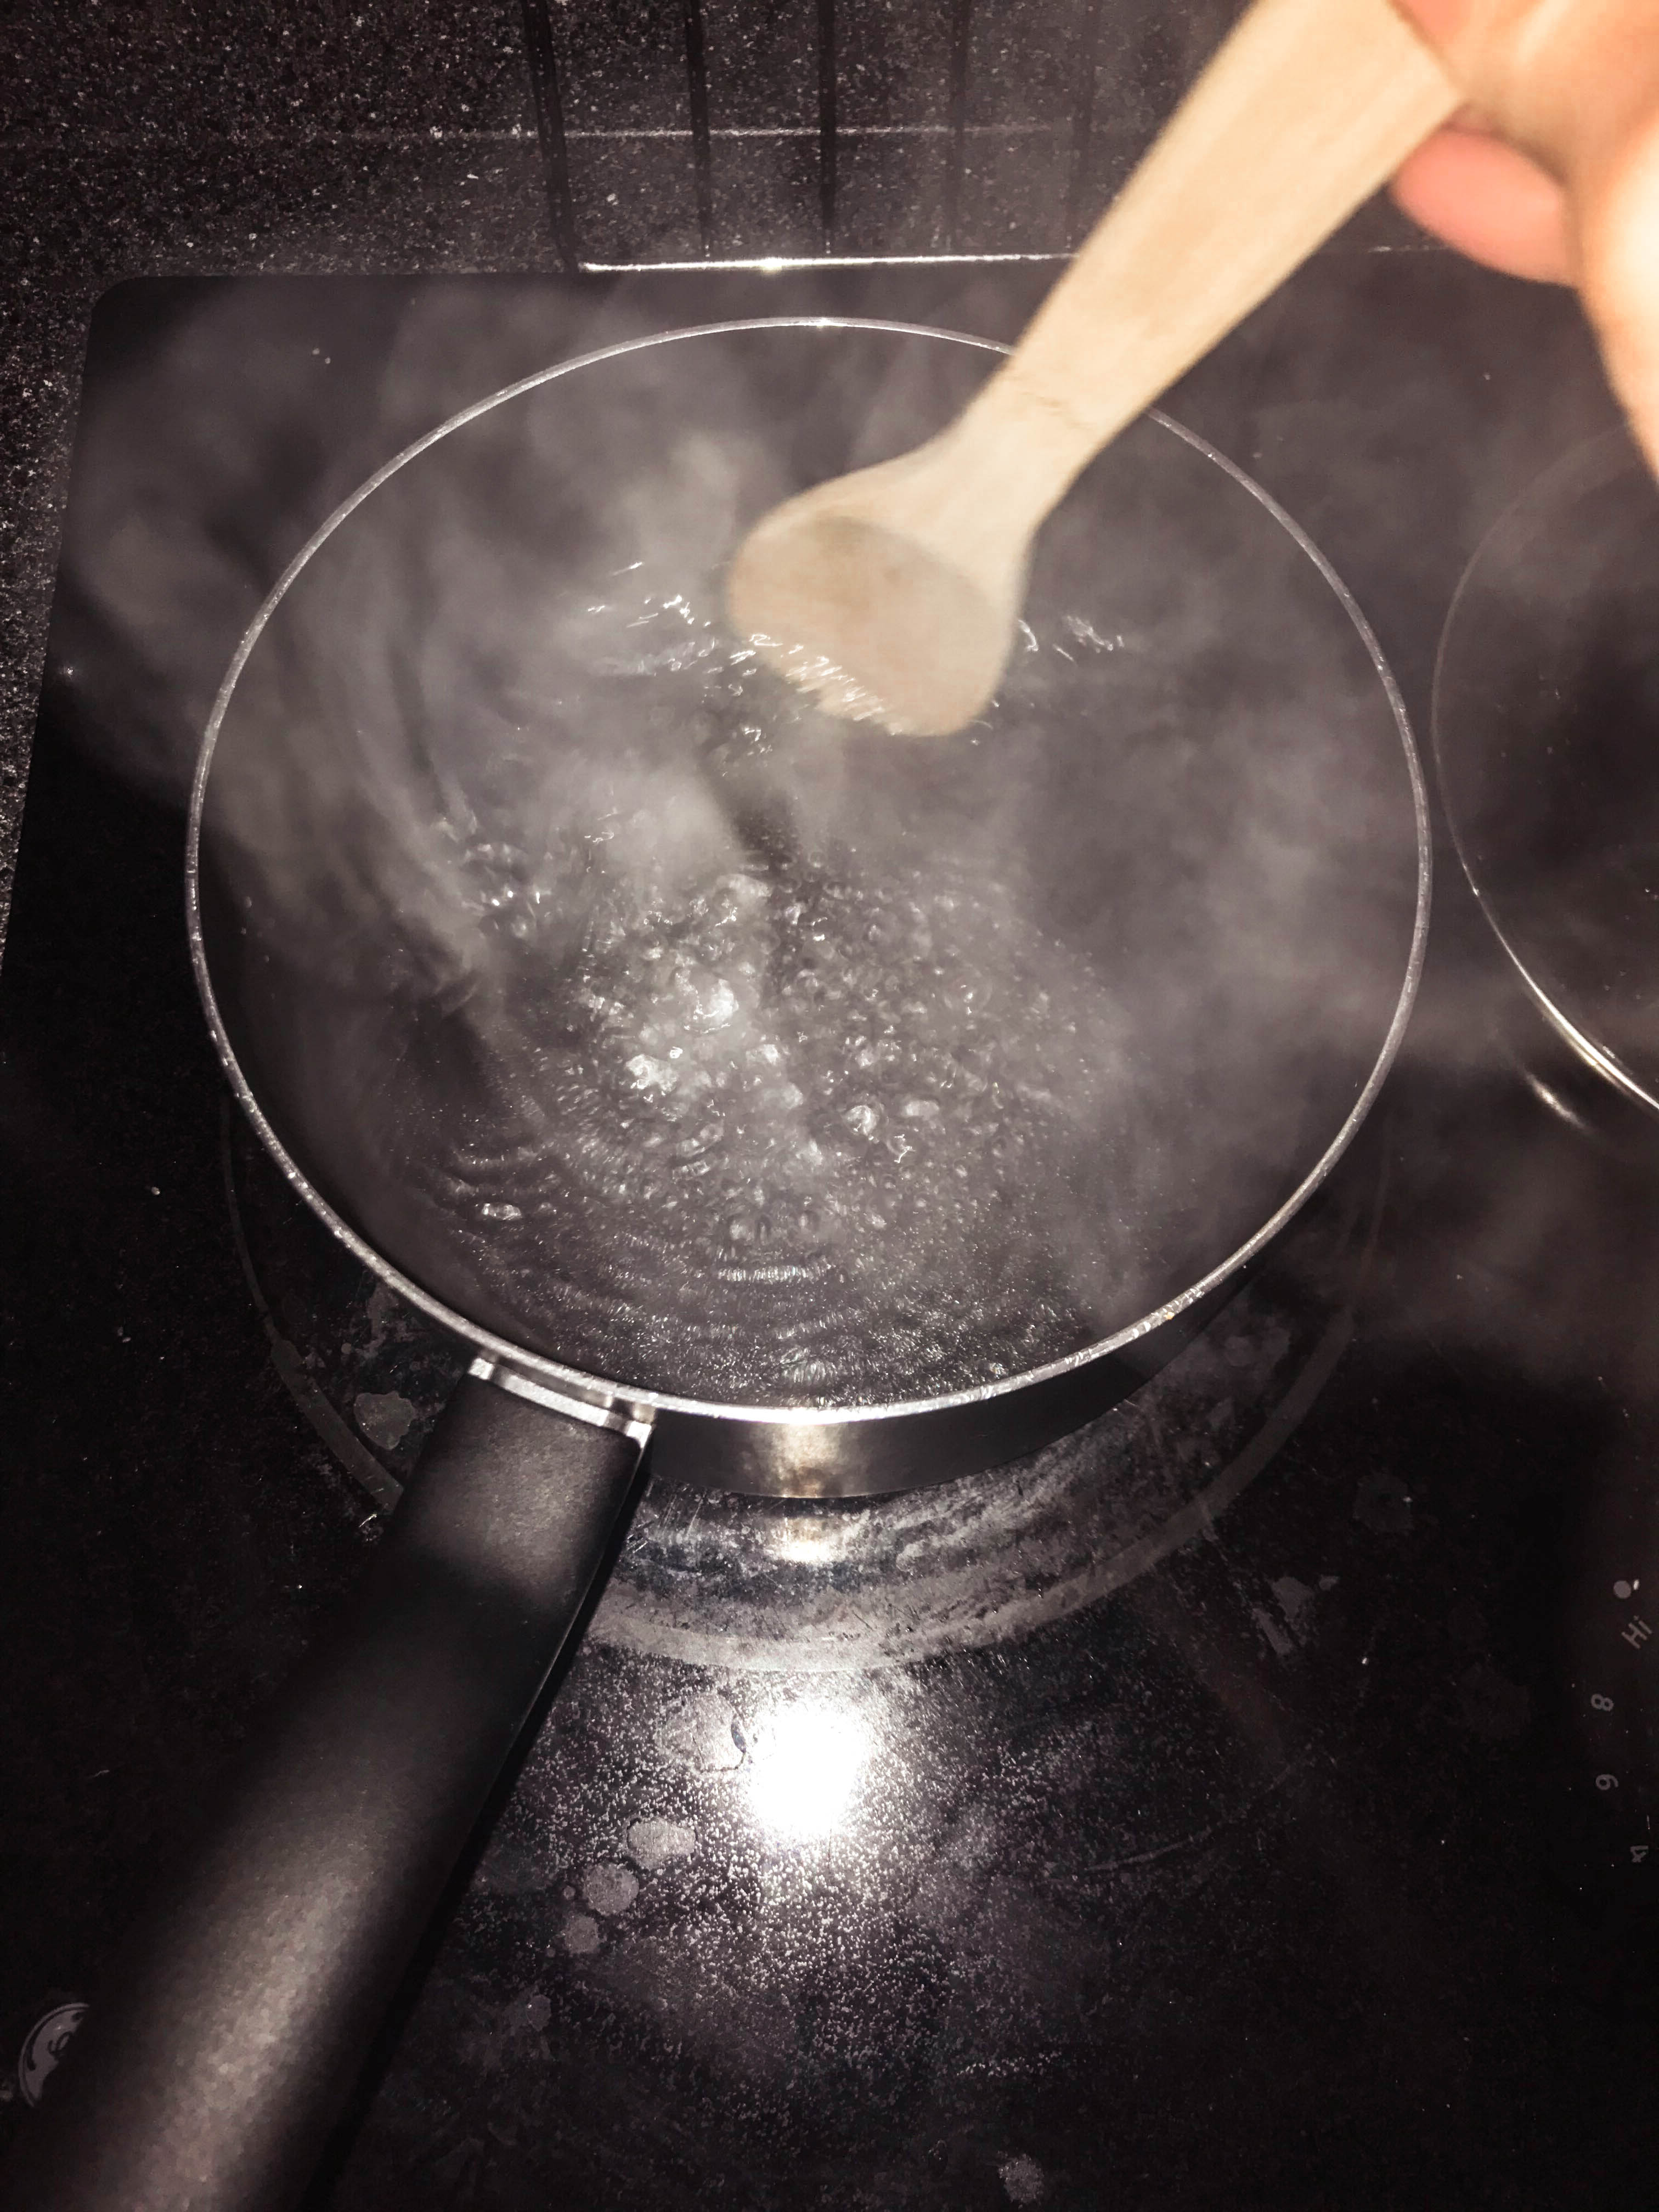 pot stove boiling water wooden spoon magic spoon cooking kitchen housework black steam DIY recipe